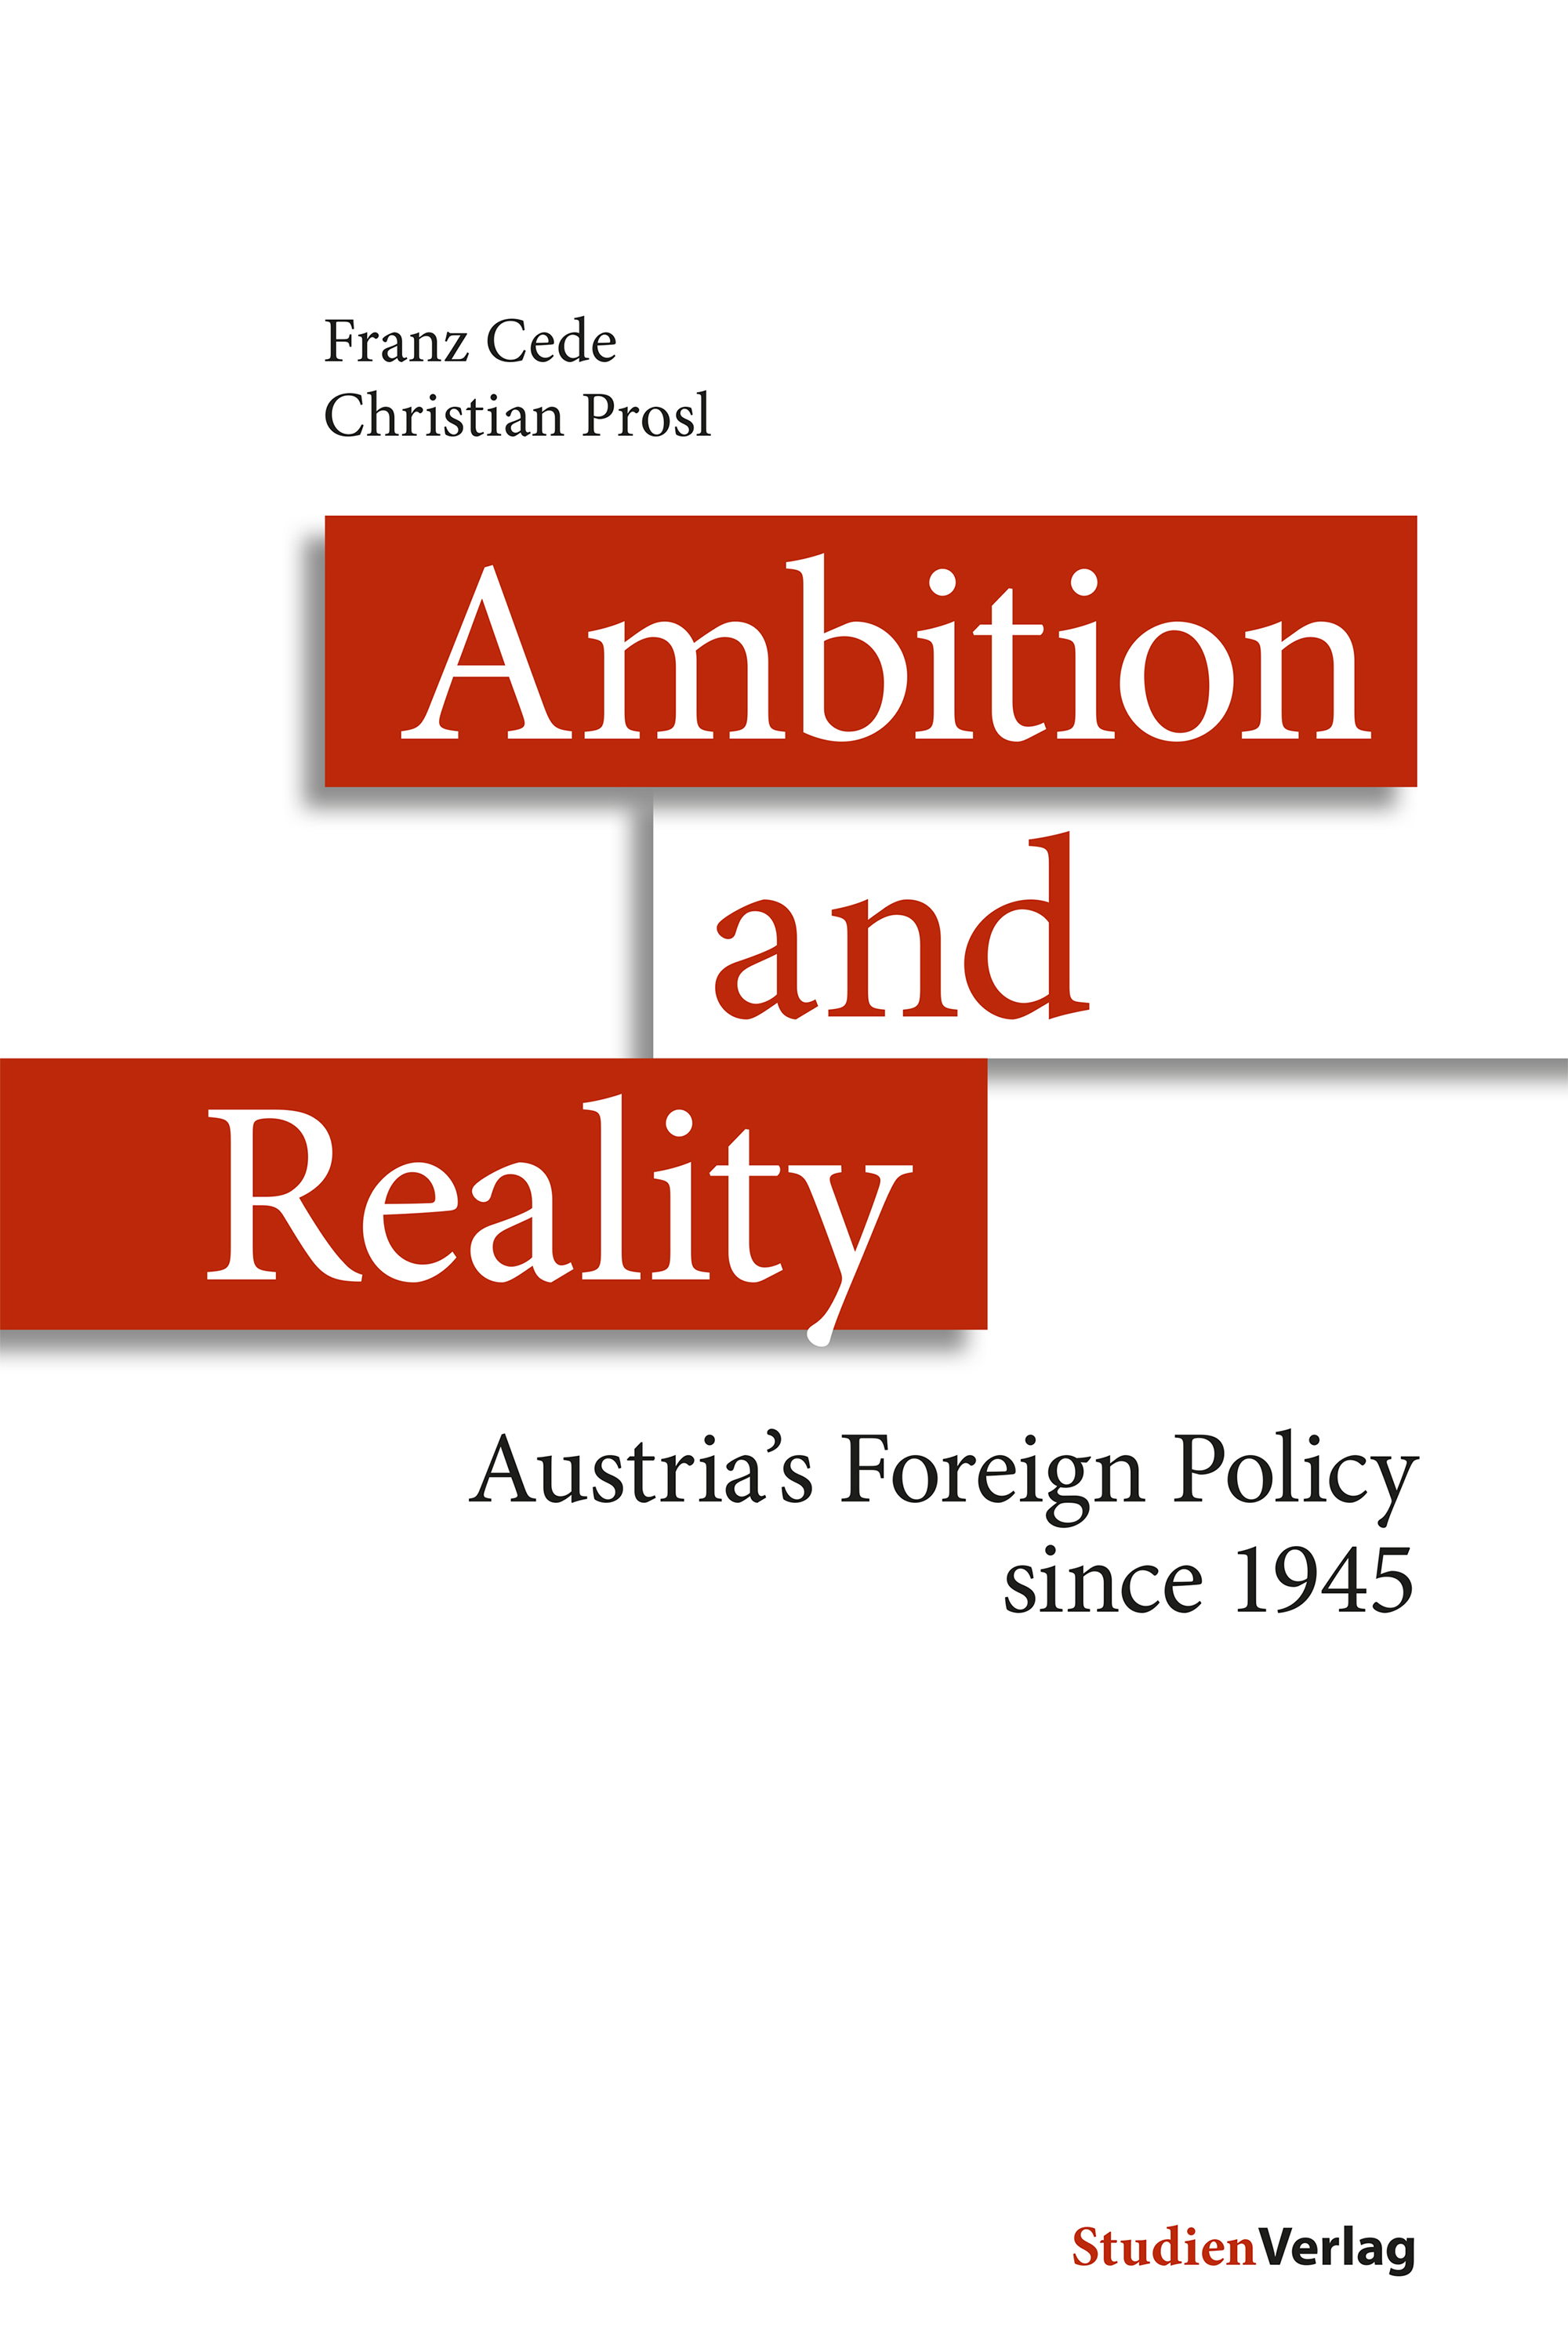 Franz Cede Ambition and Reality